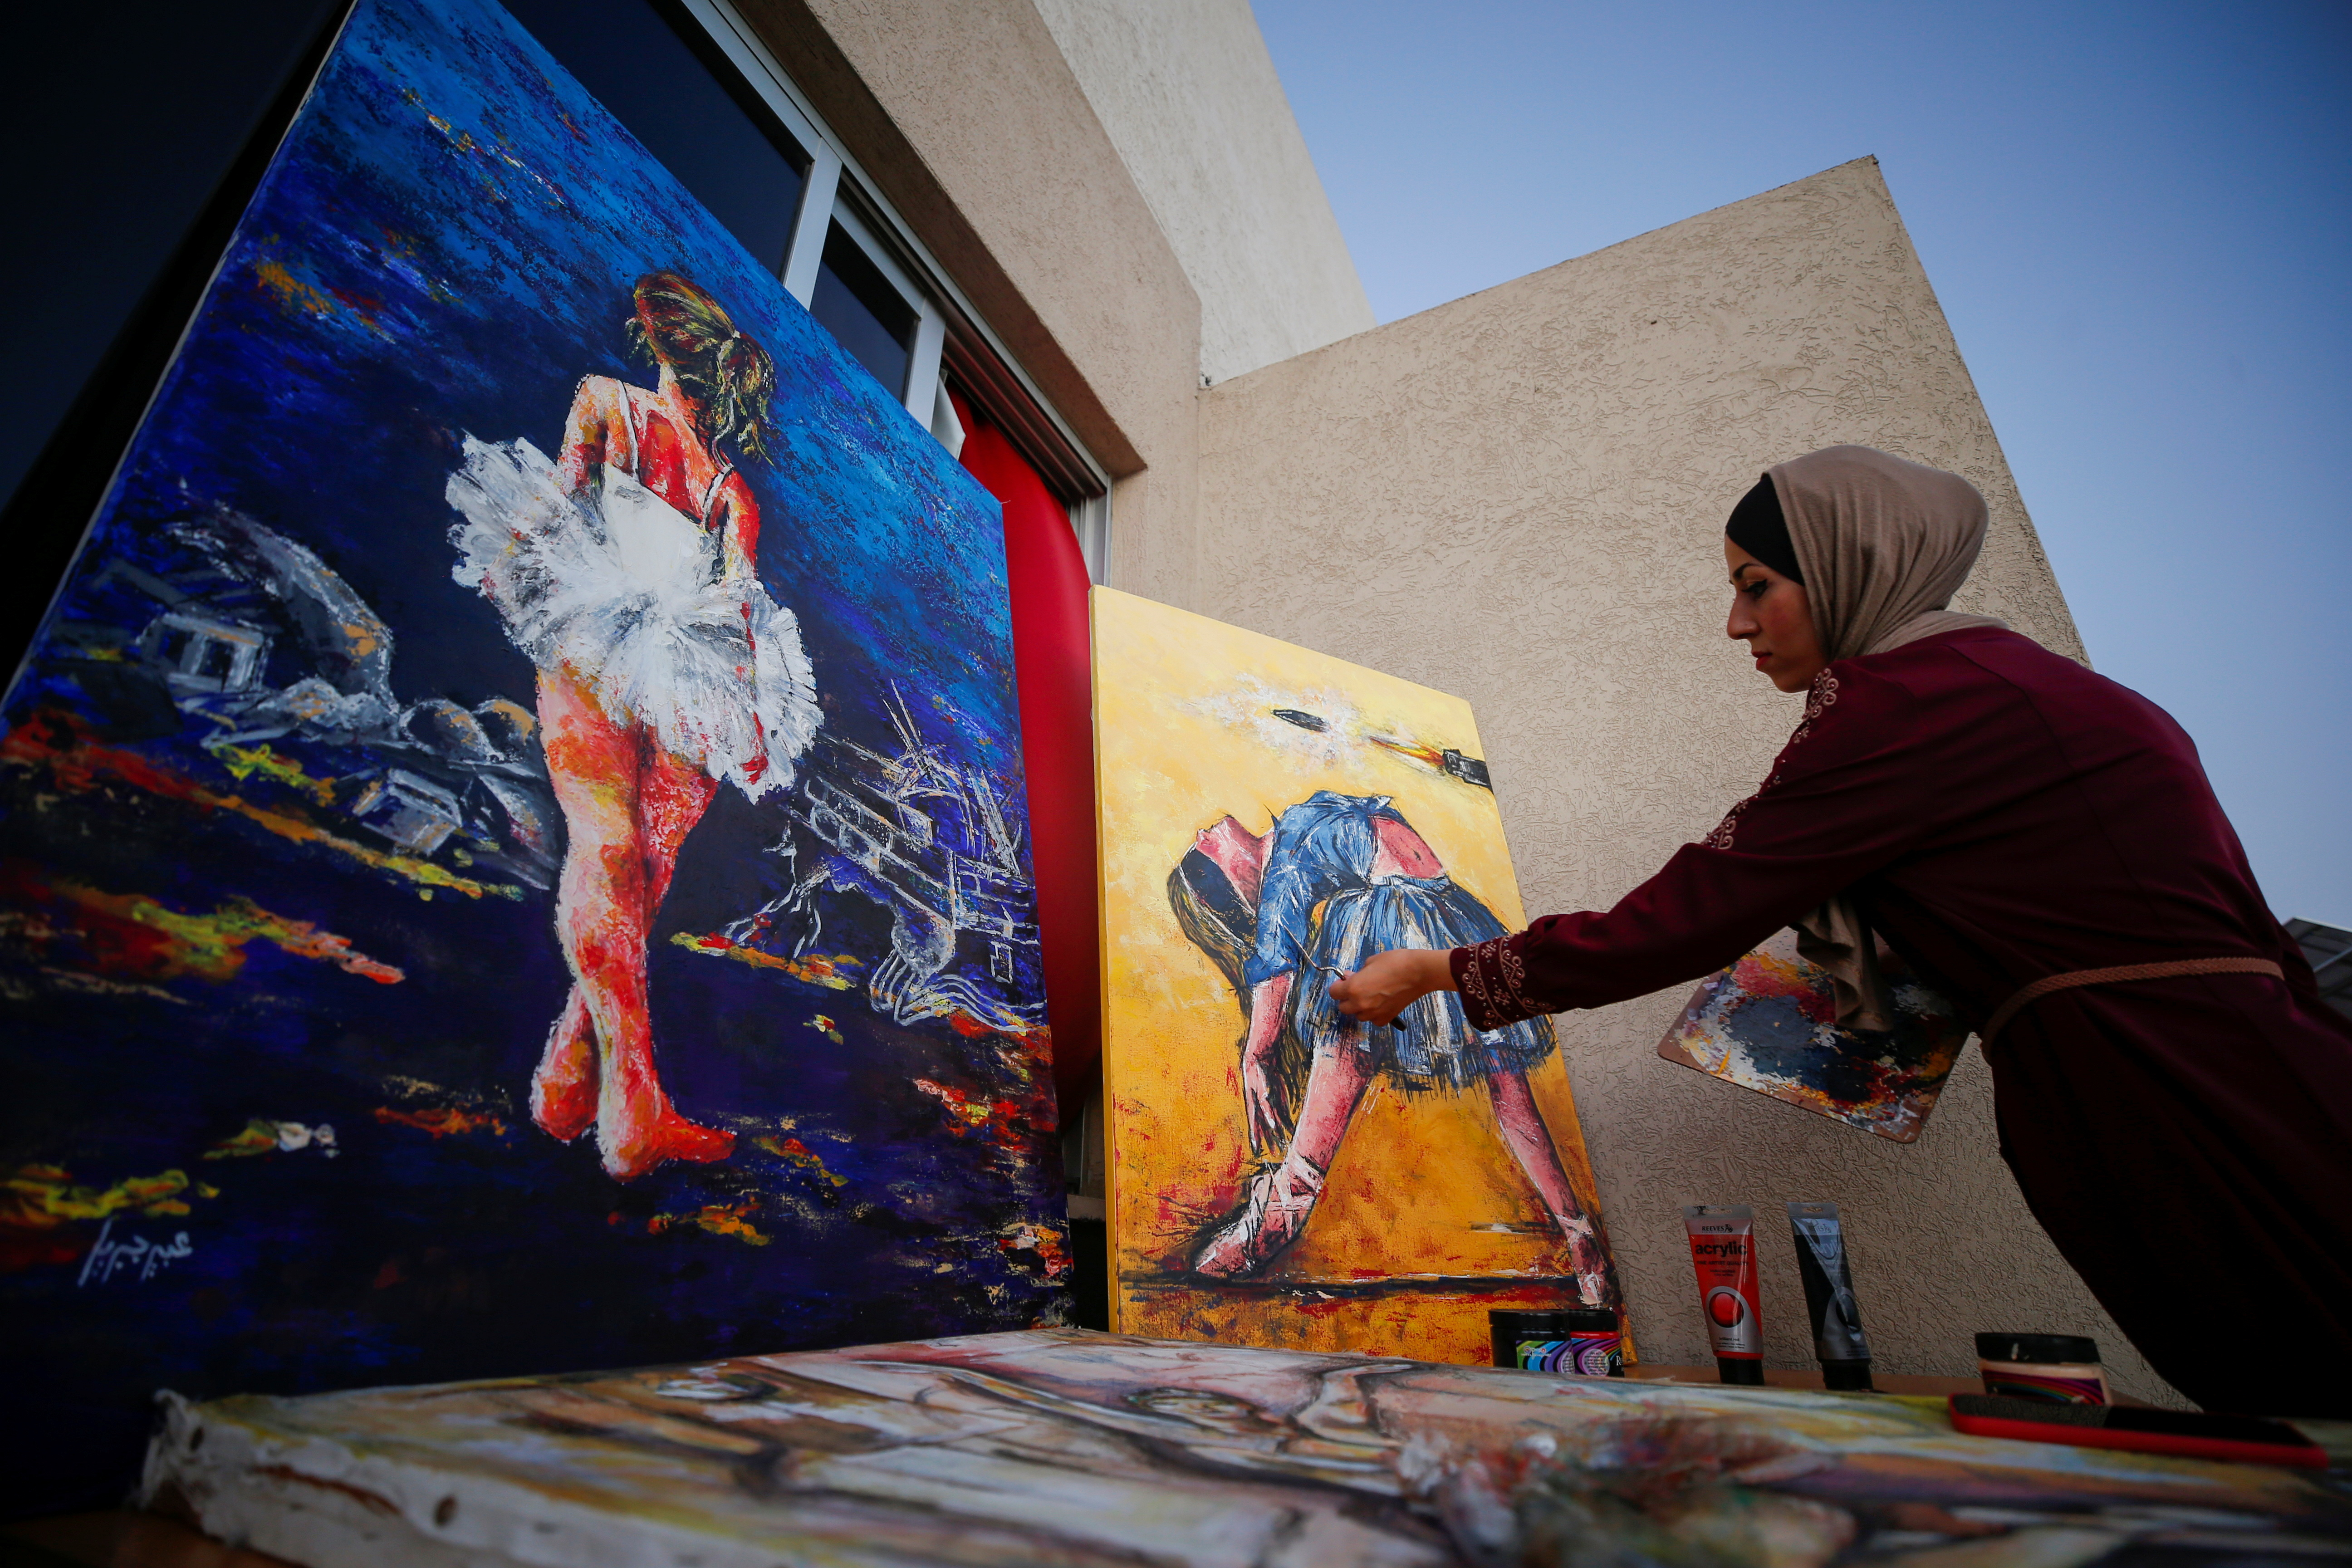 A Palestinian artist, Abeer Jibril, works on ballet paintings at her home in Gaza City, September 8, 2021. REUTERS/Mohammed Salem